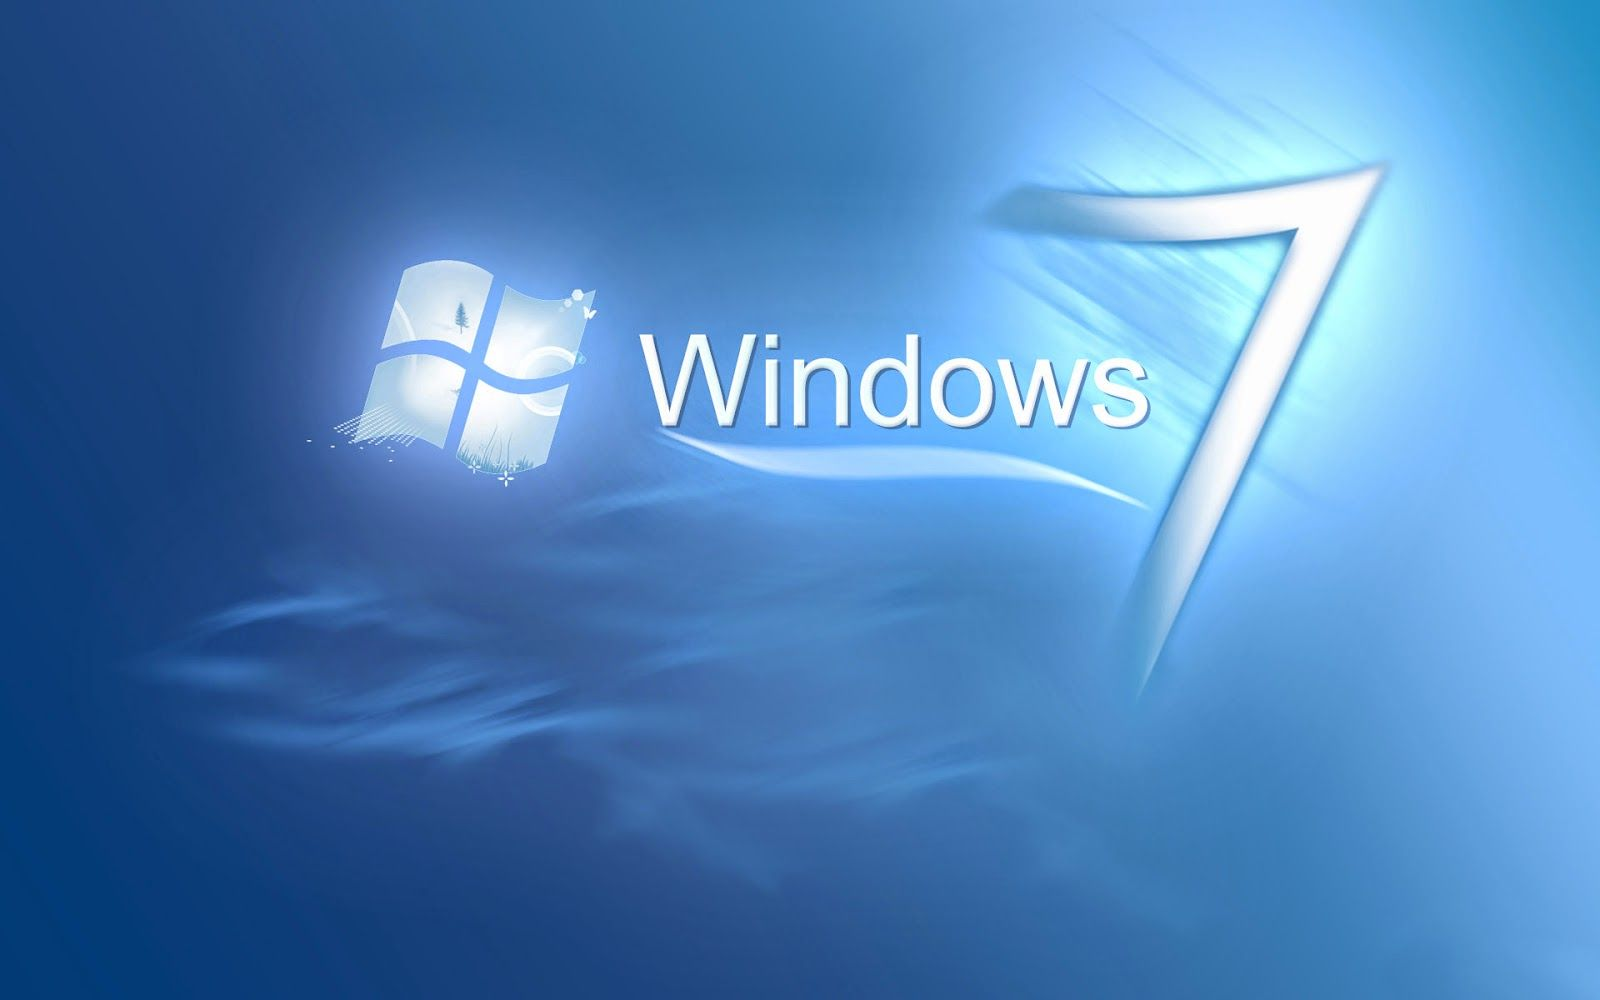 D Windows Wallpaper Desktop Background